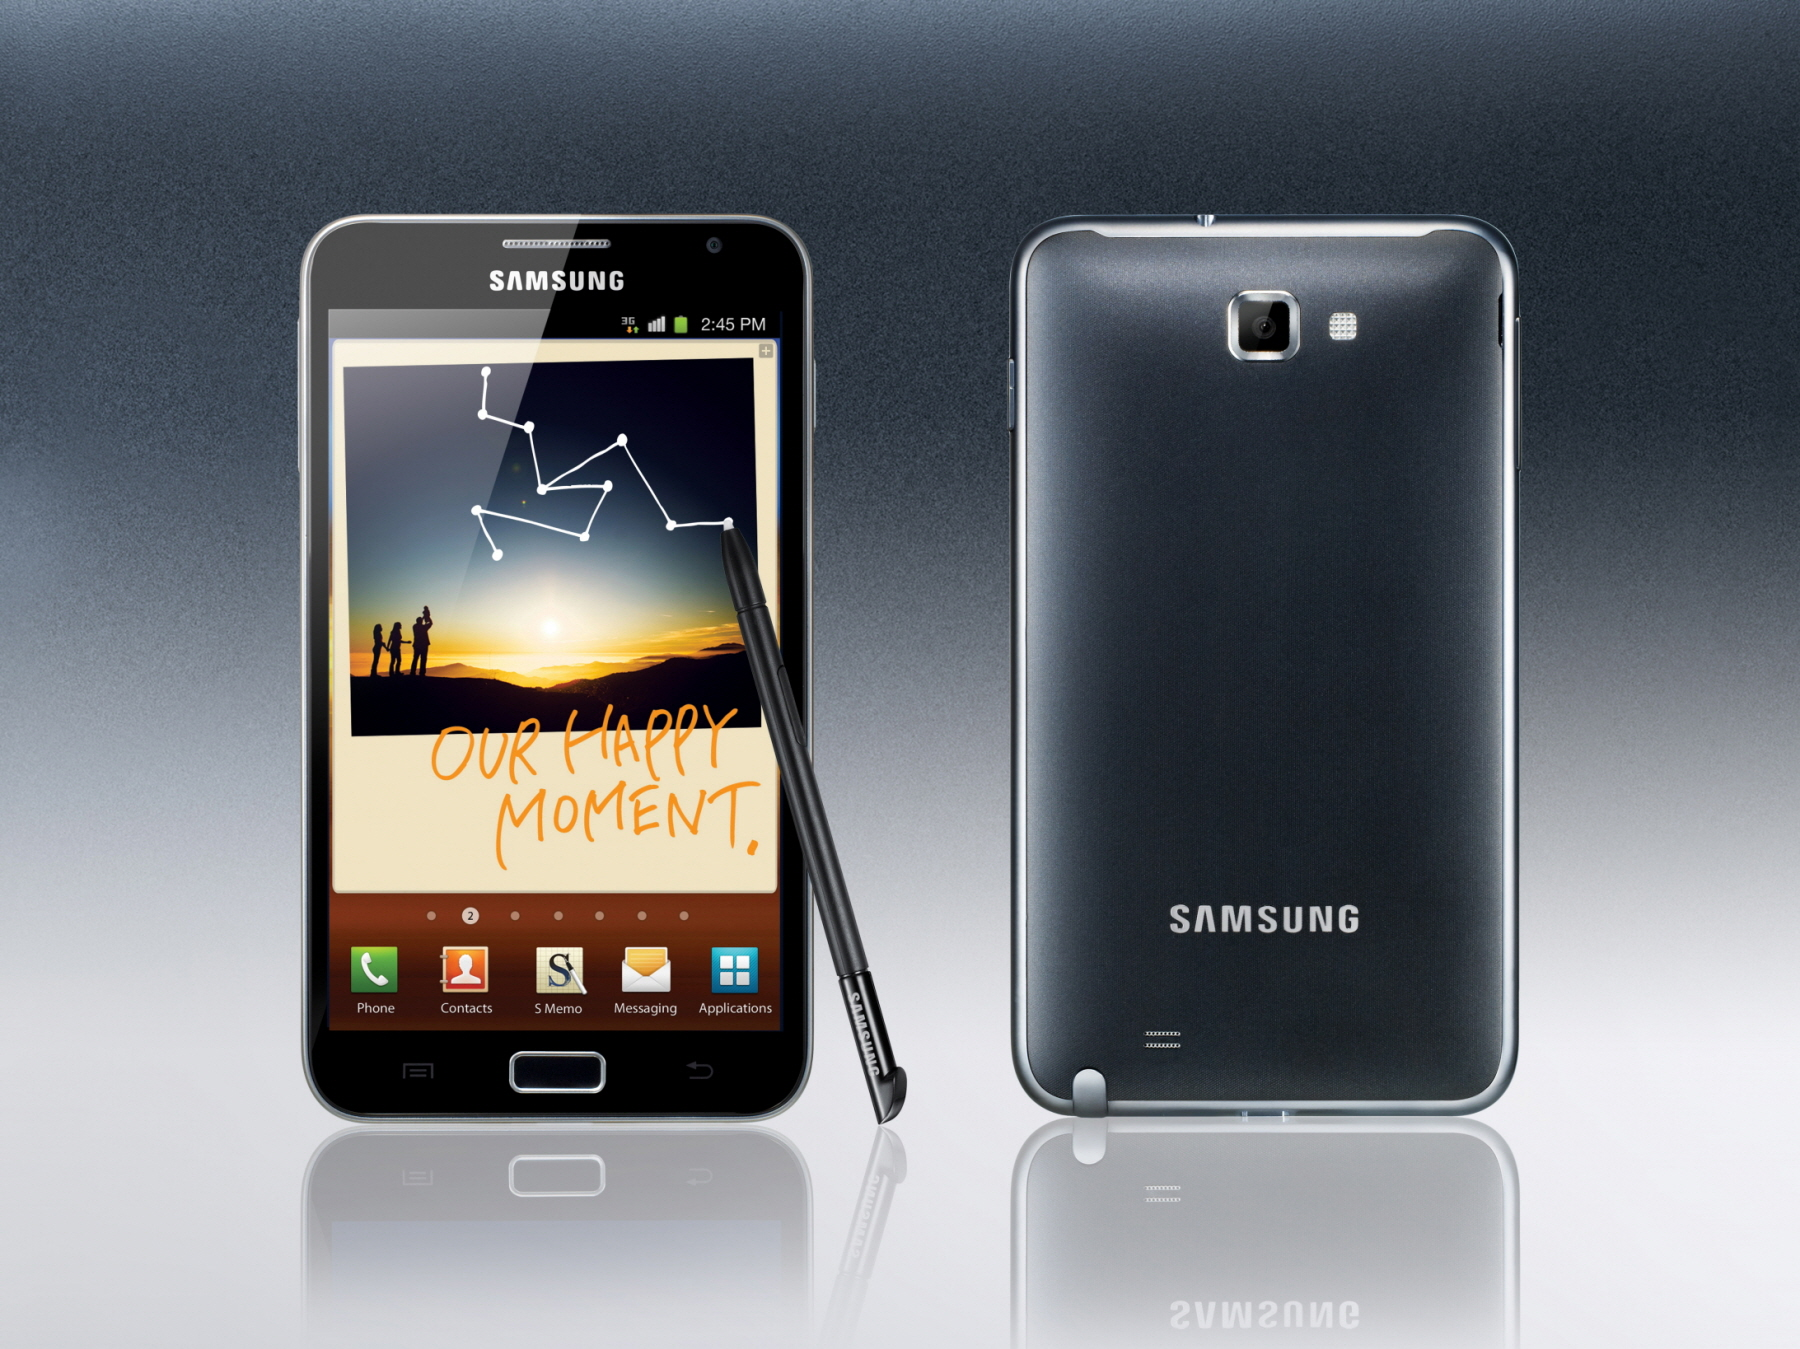 Samsung Galaxy Note Launching In The Uk On November 17